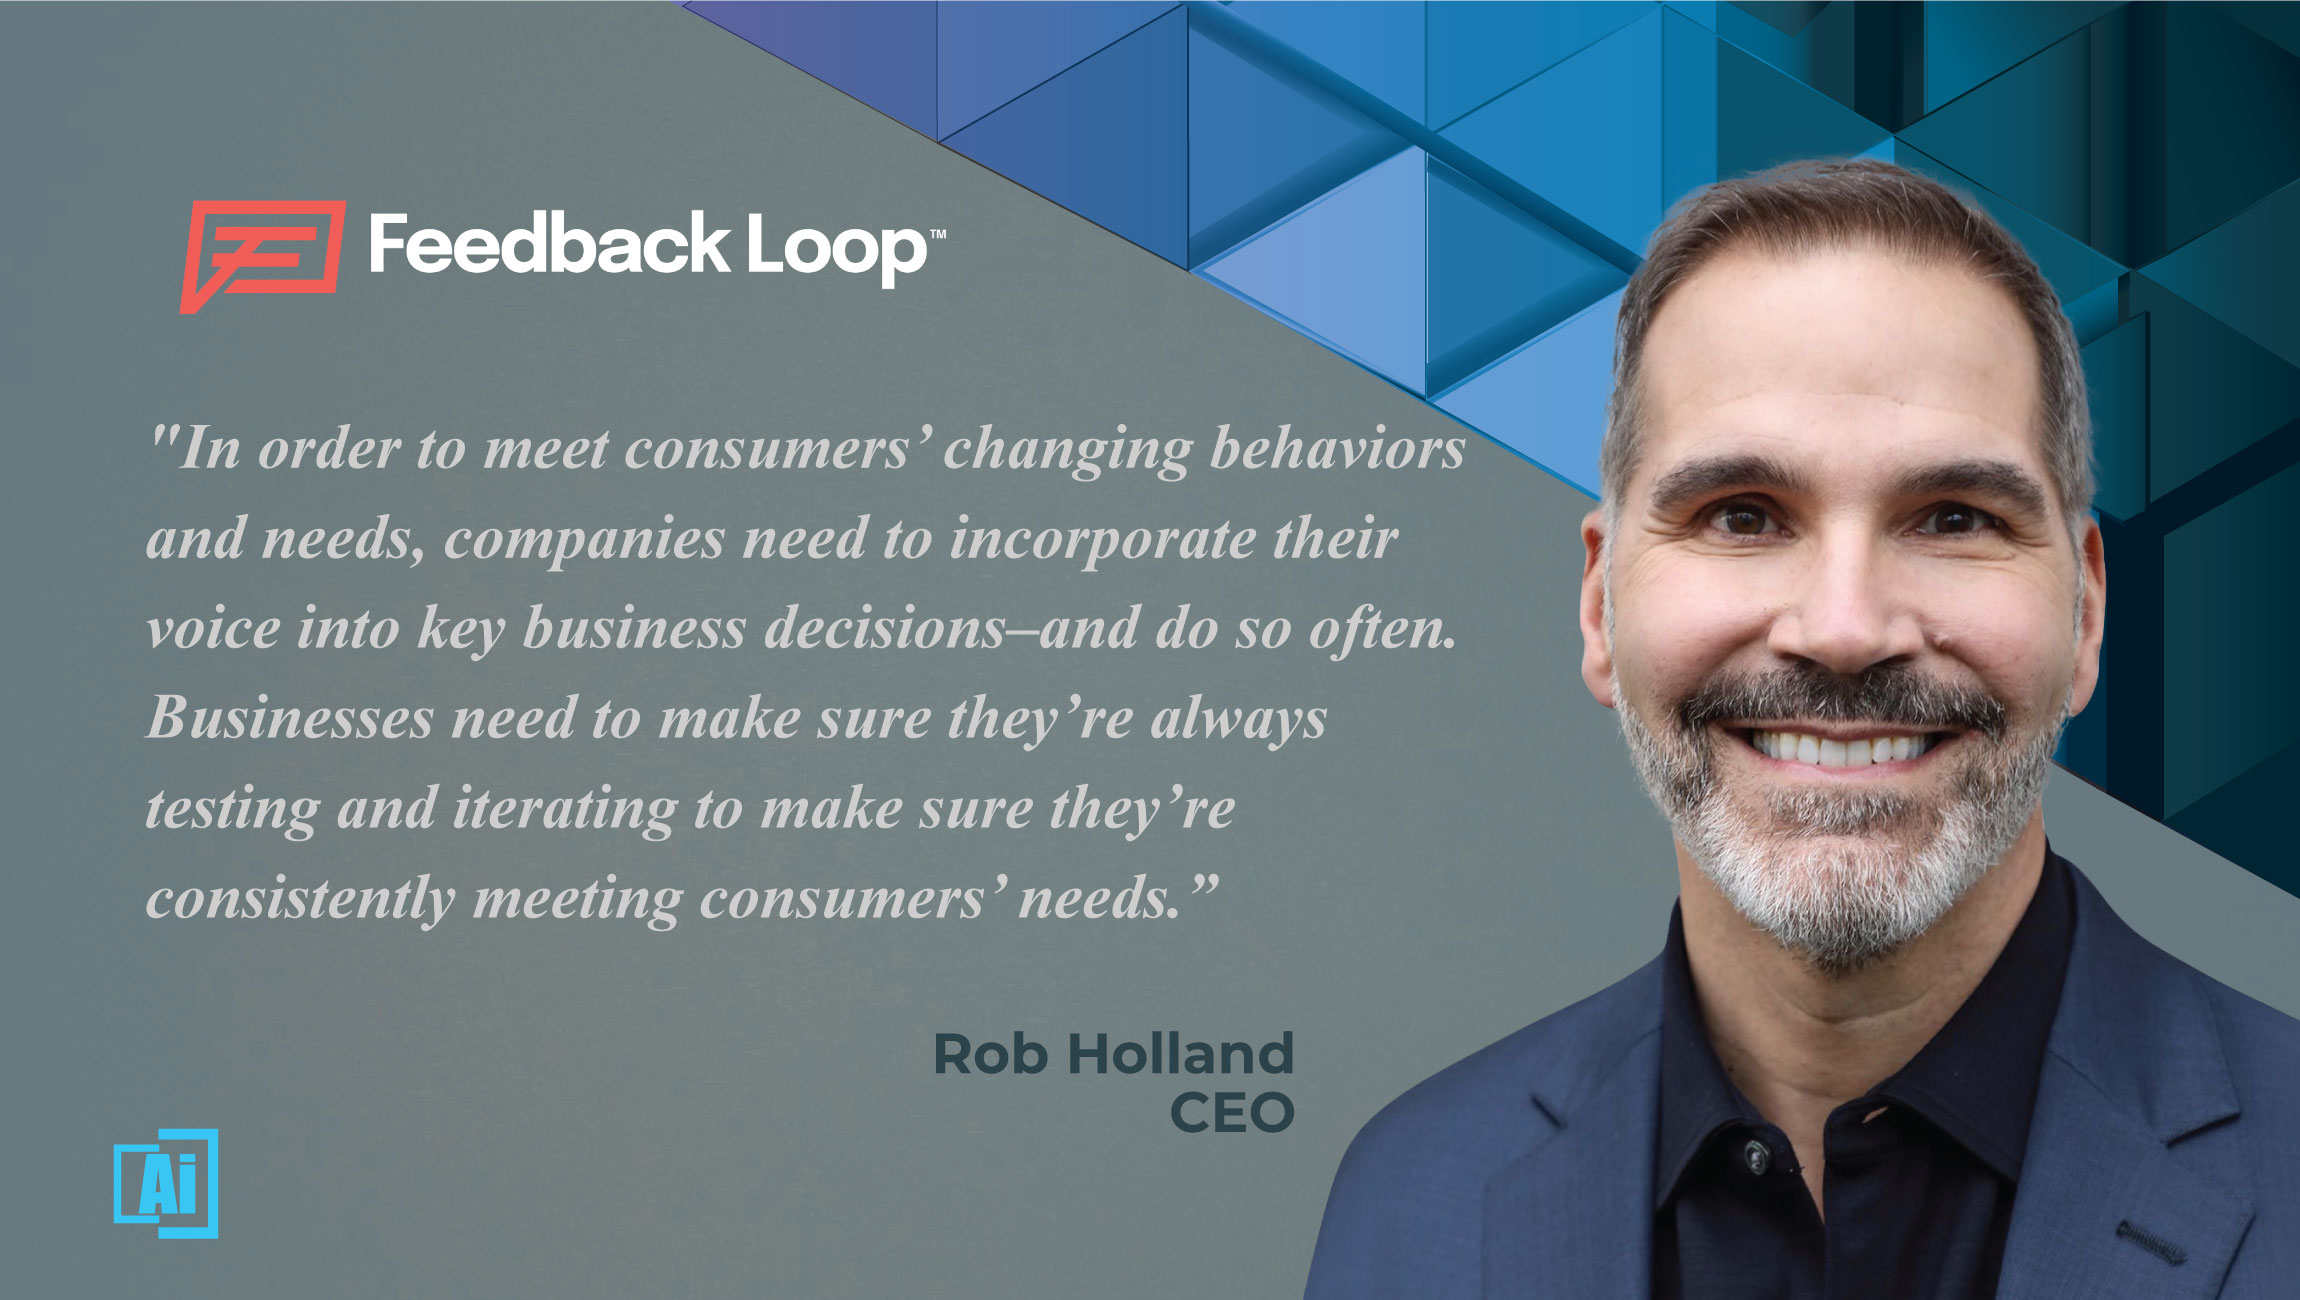 AiThority Interview with Rob Holland, CEO at Feedback Loop